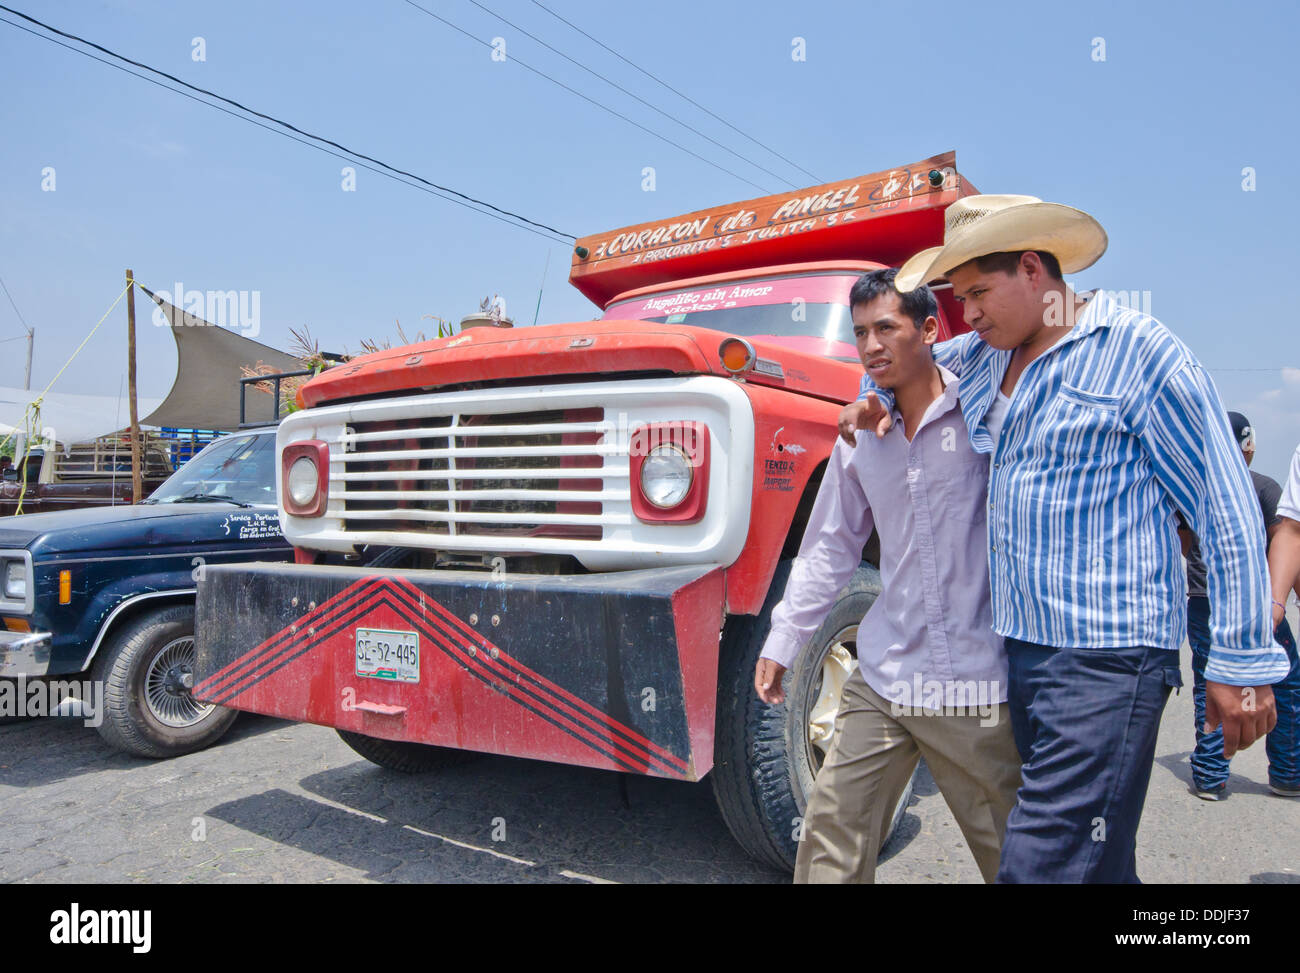 Two male friends, one with arm around the other, walking on road in front of truck in Mexico - Stock Image